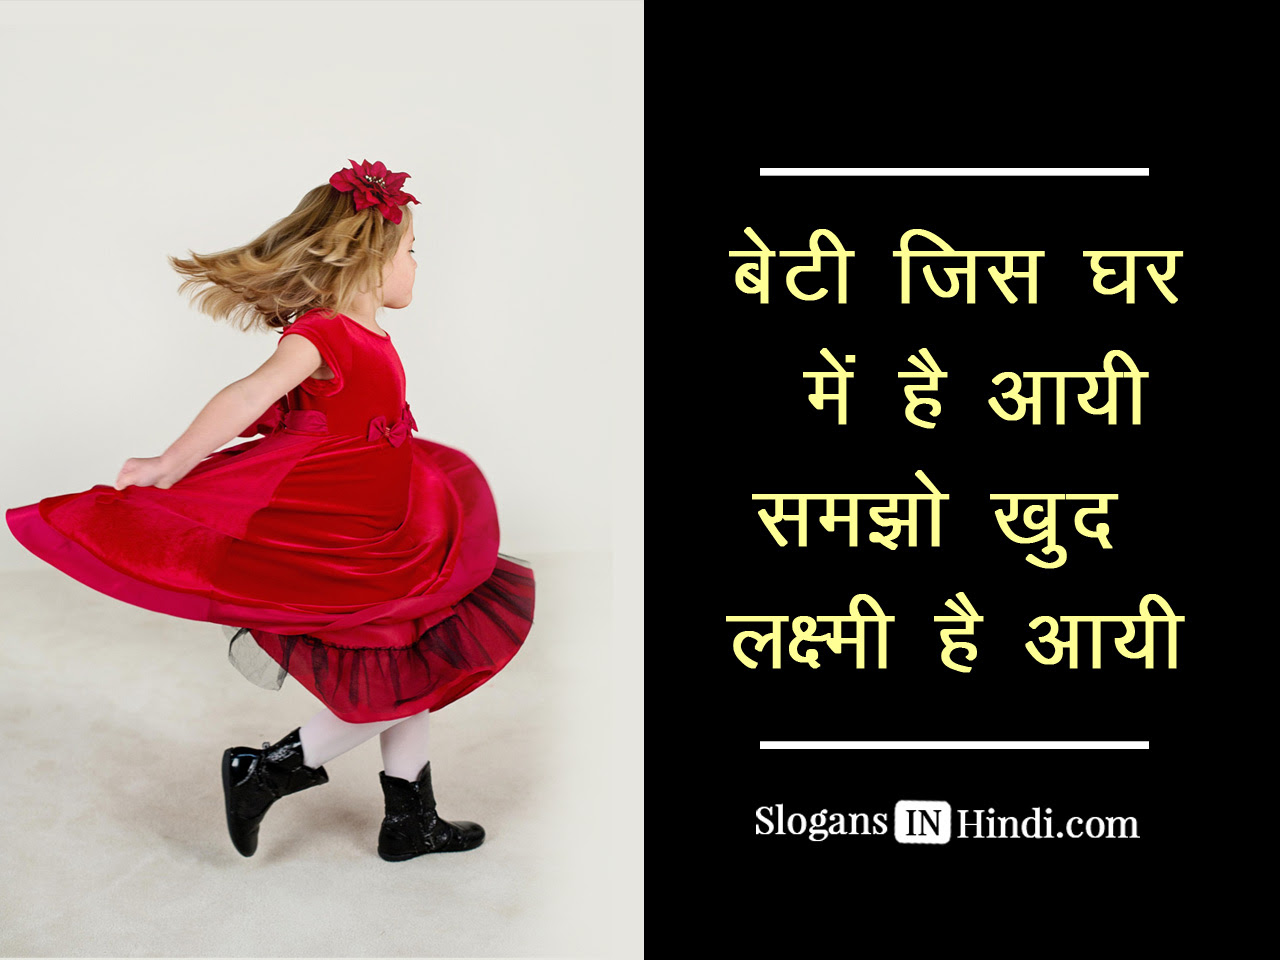 Save Girl Child Slogans In Hindi